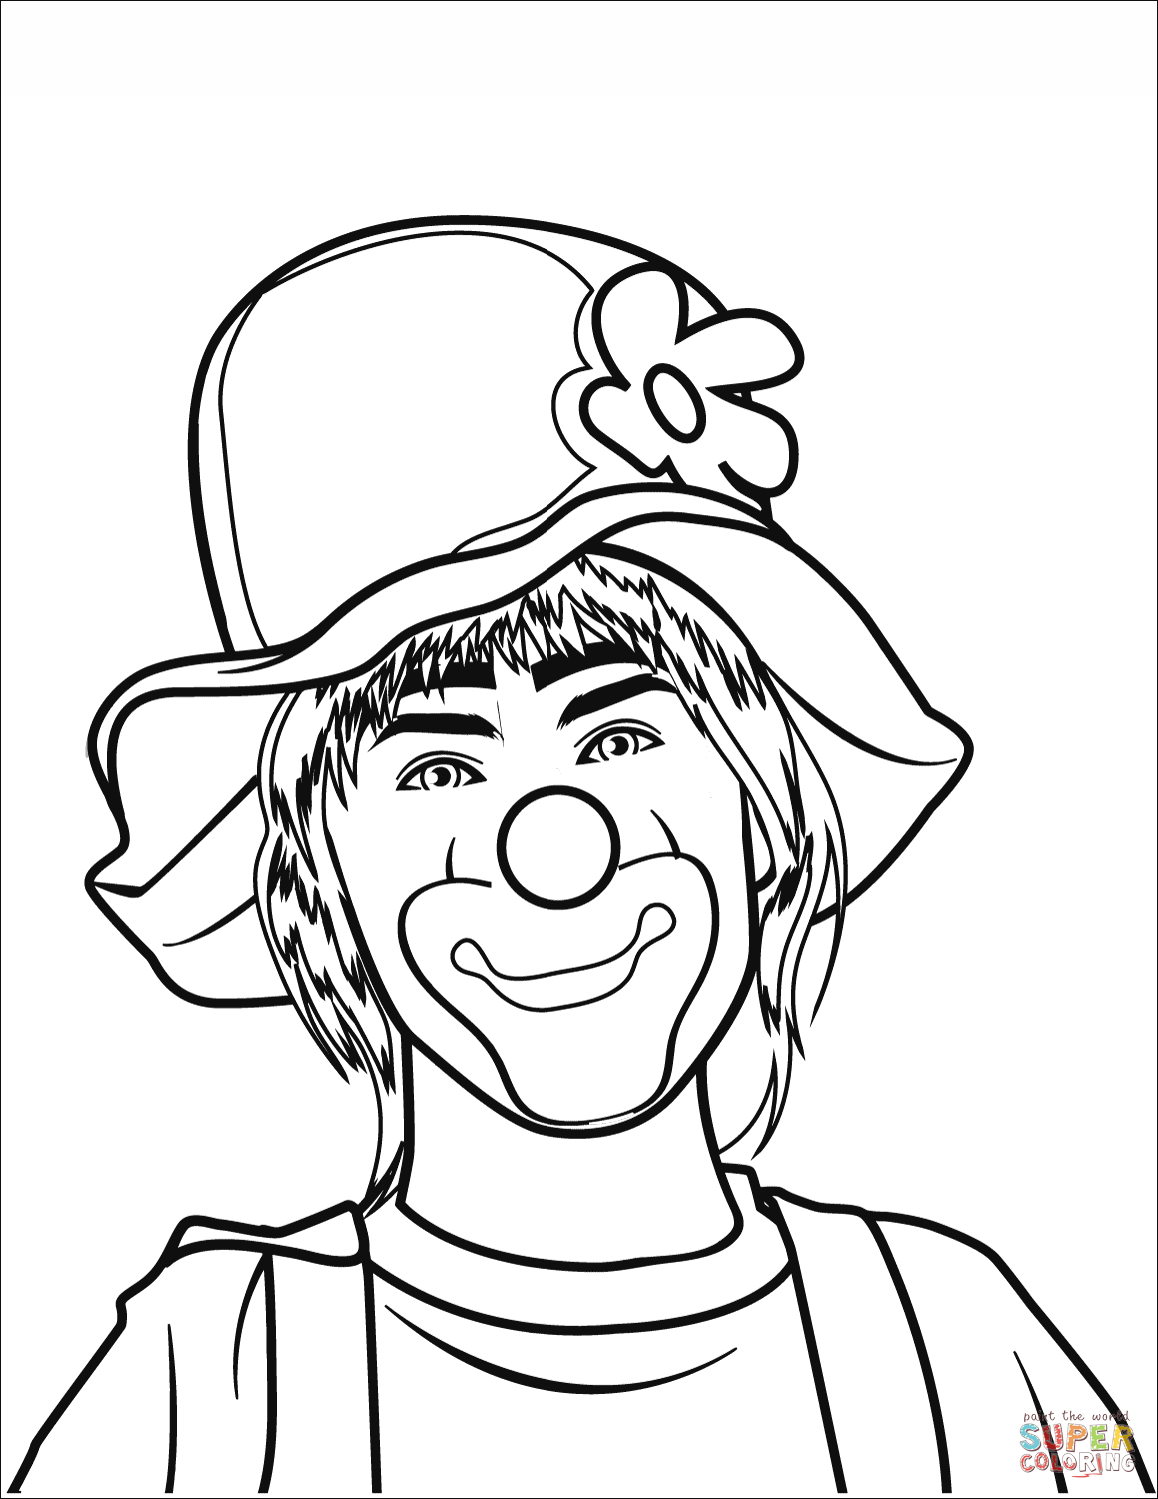 clown printable coloring pages clown coloring page free printable coloring pages pages clown printable coloring